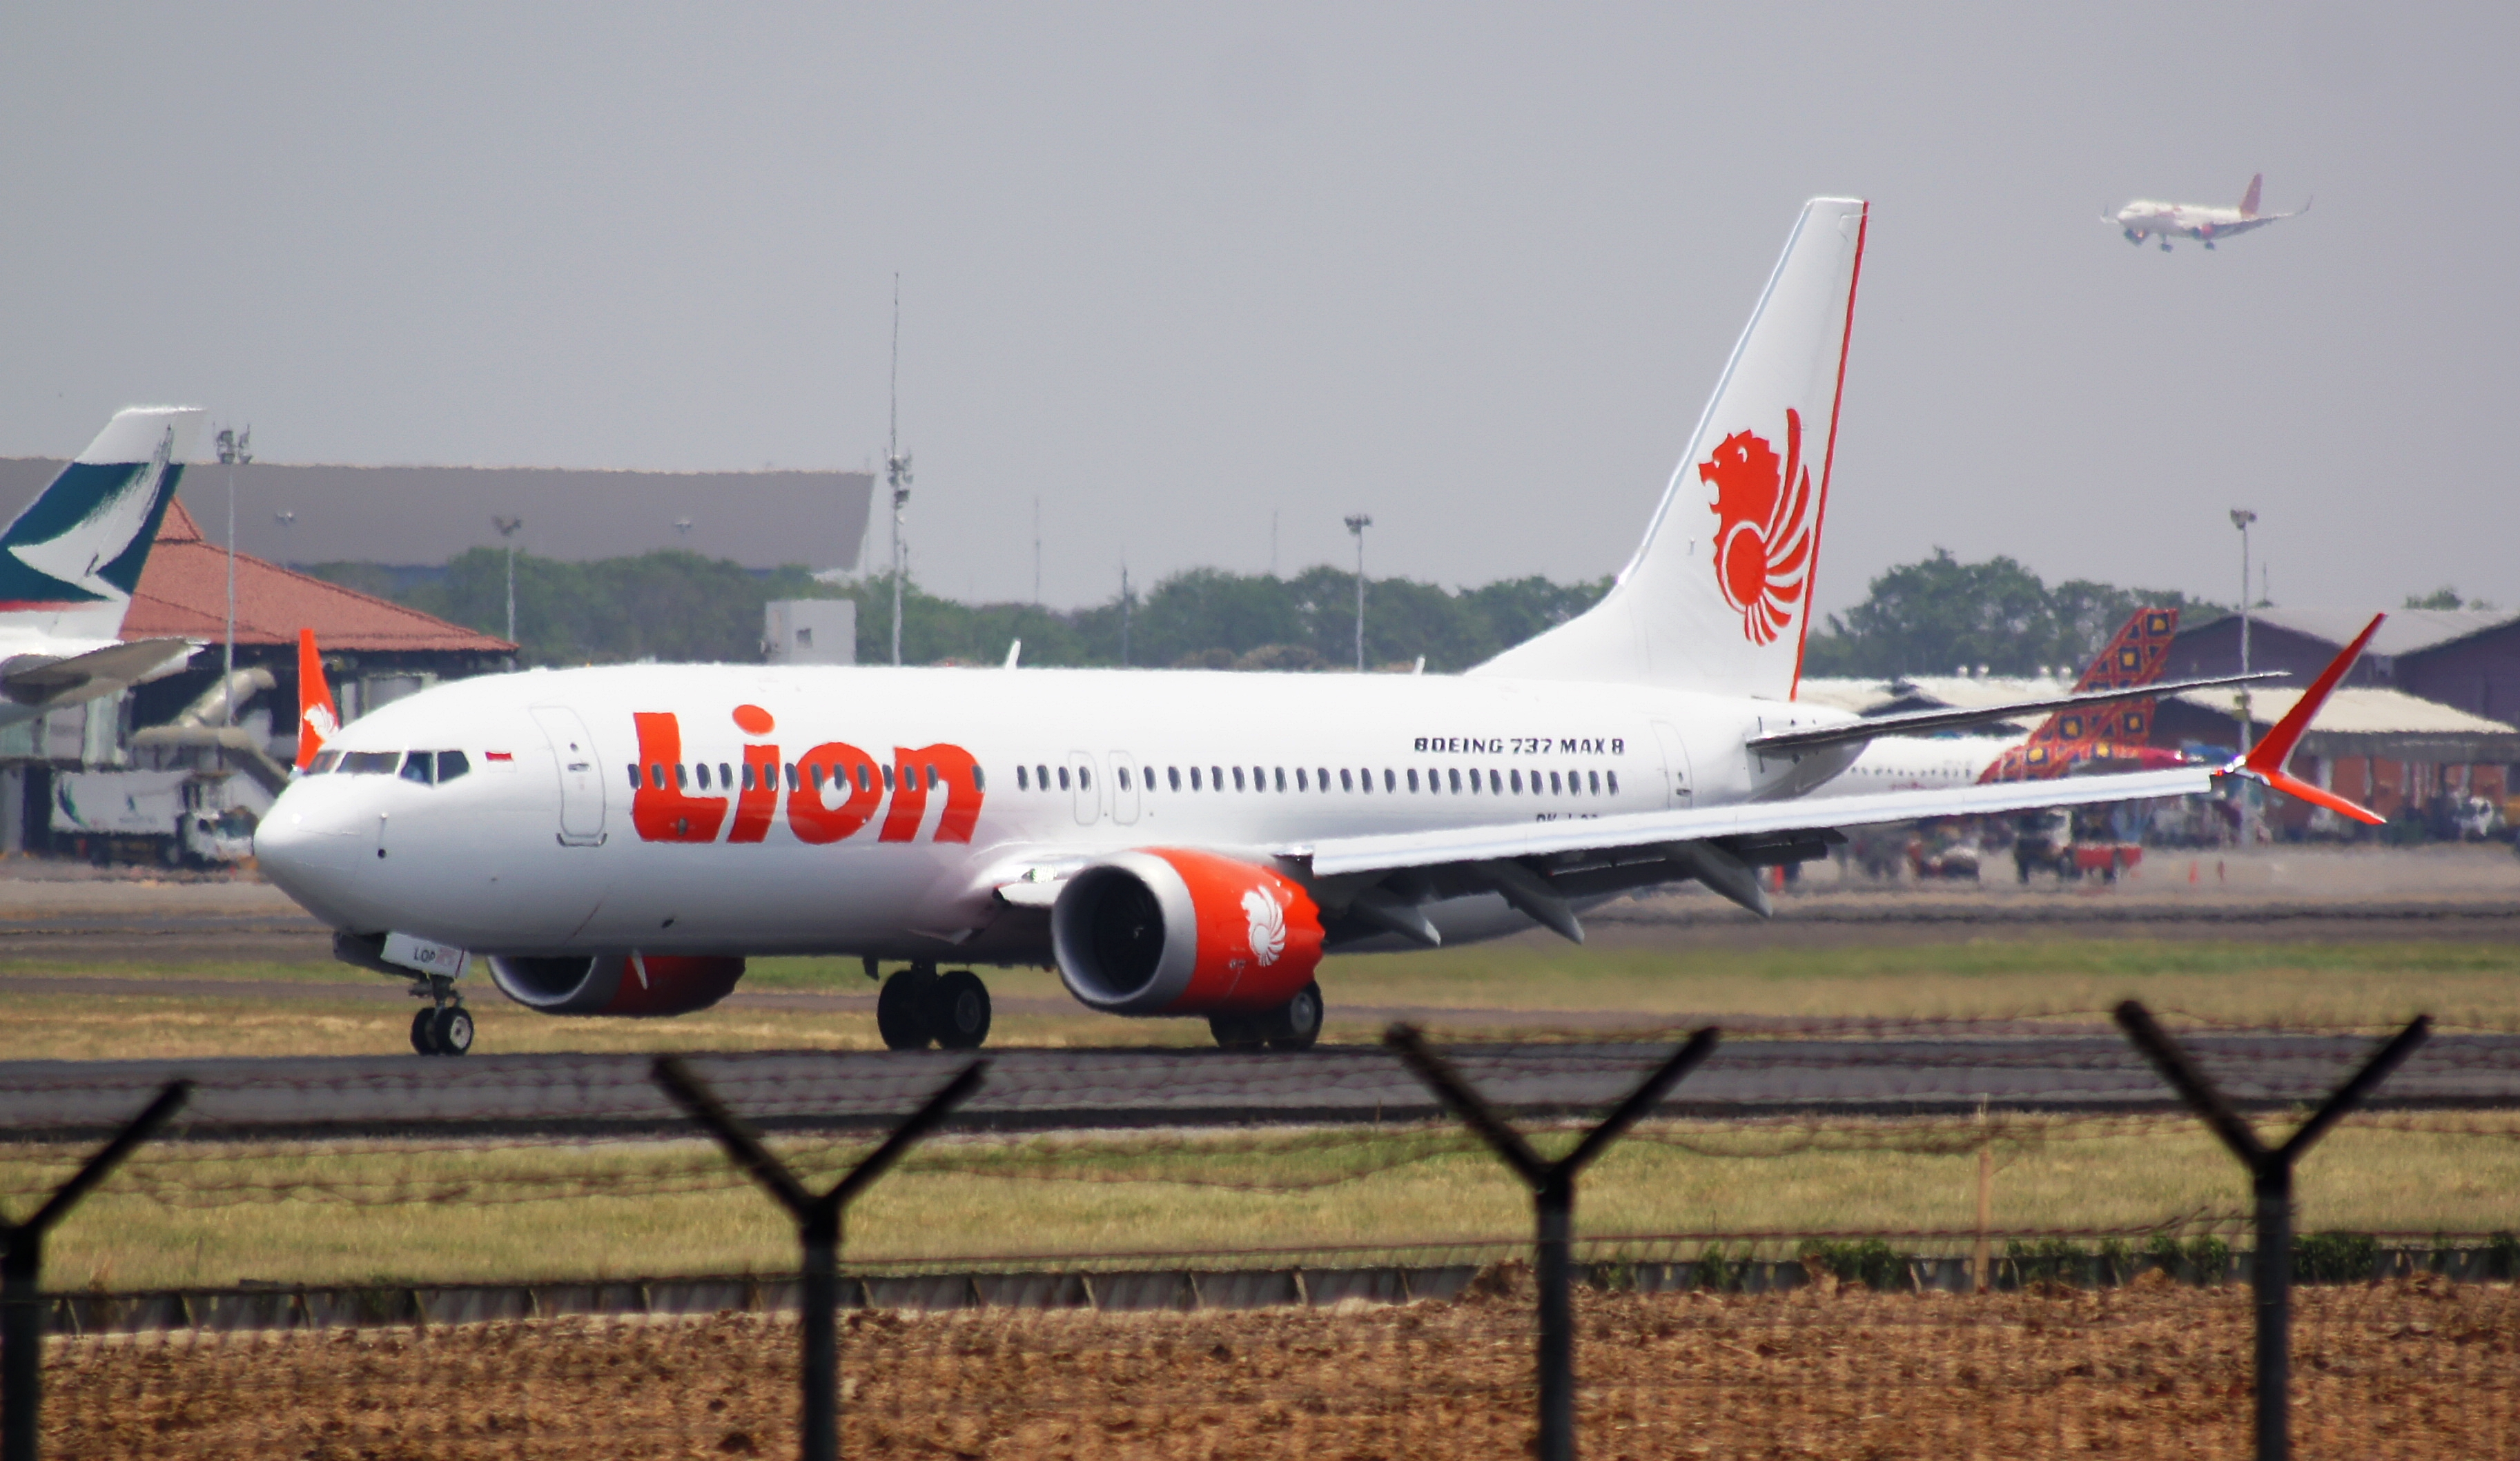 Lion Air Flight 610 - Wikipedia